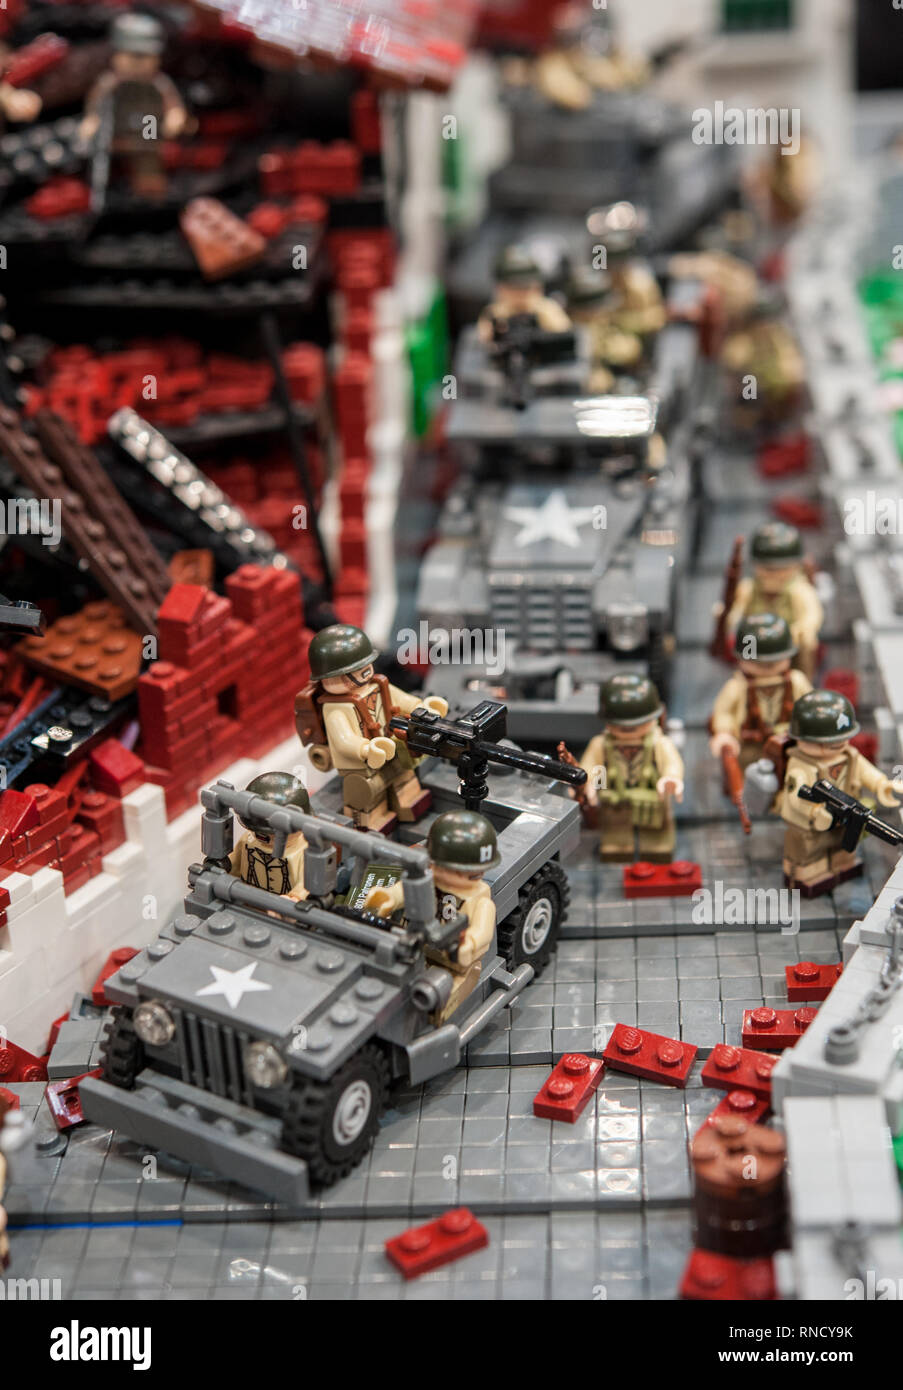 Detail of war theatre plastic model, with military jeep and destroyed buildings Stock Photo